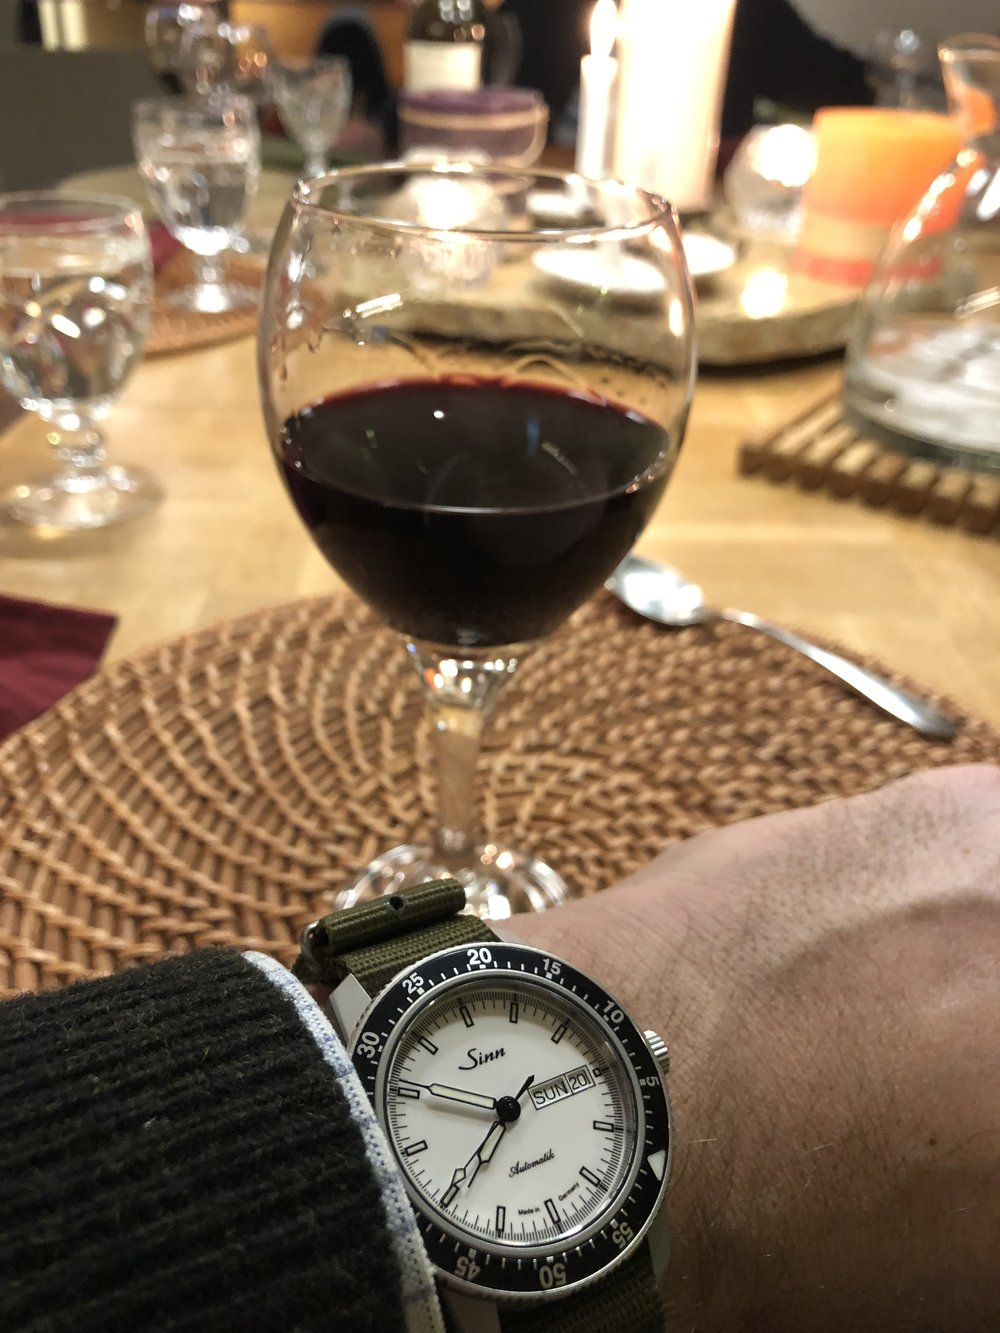 From cabin to dining room, the Sinn 104 White is comfortable everywhere.